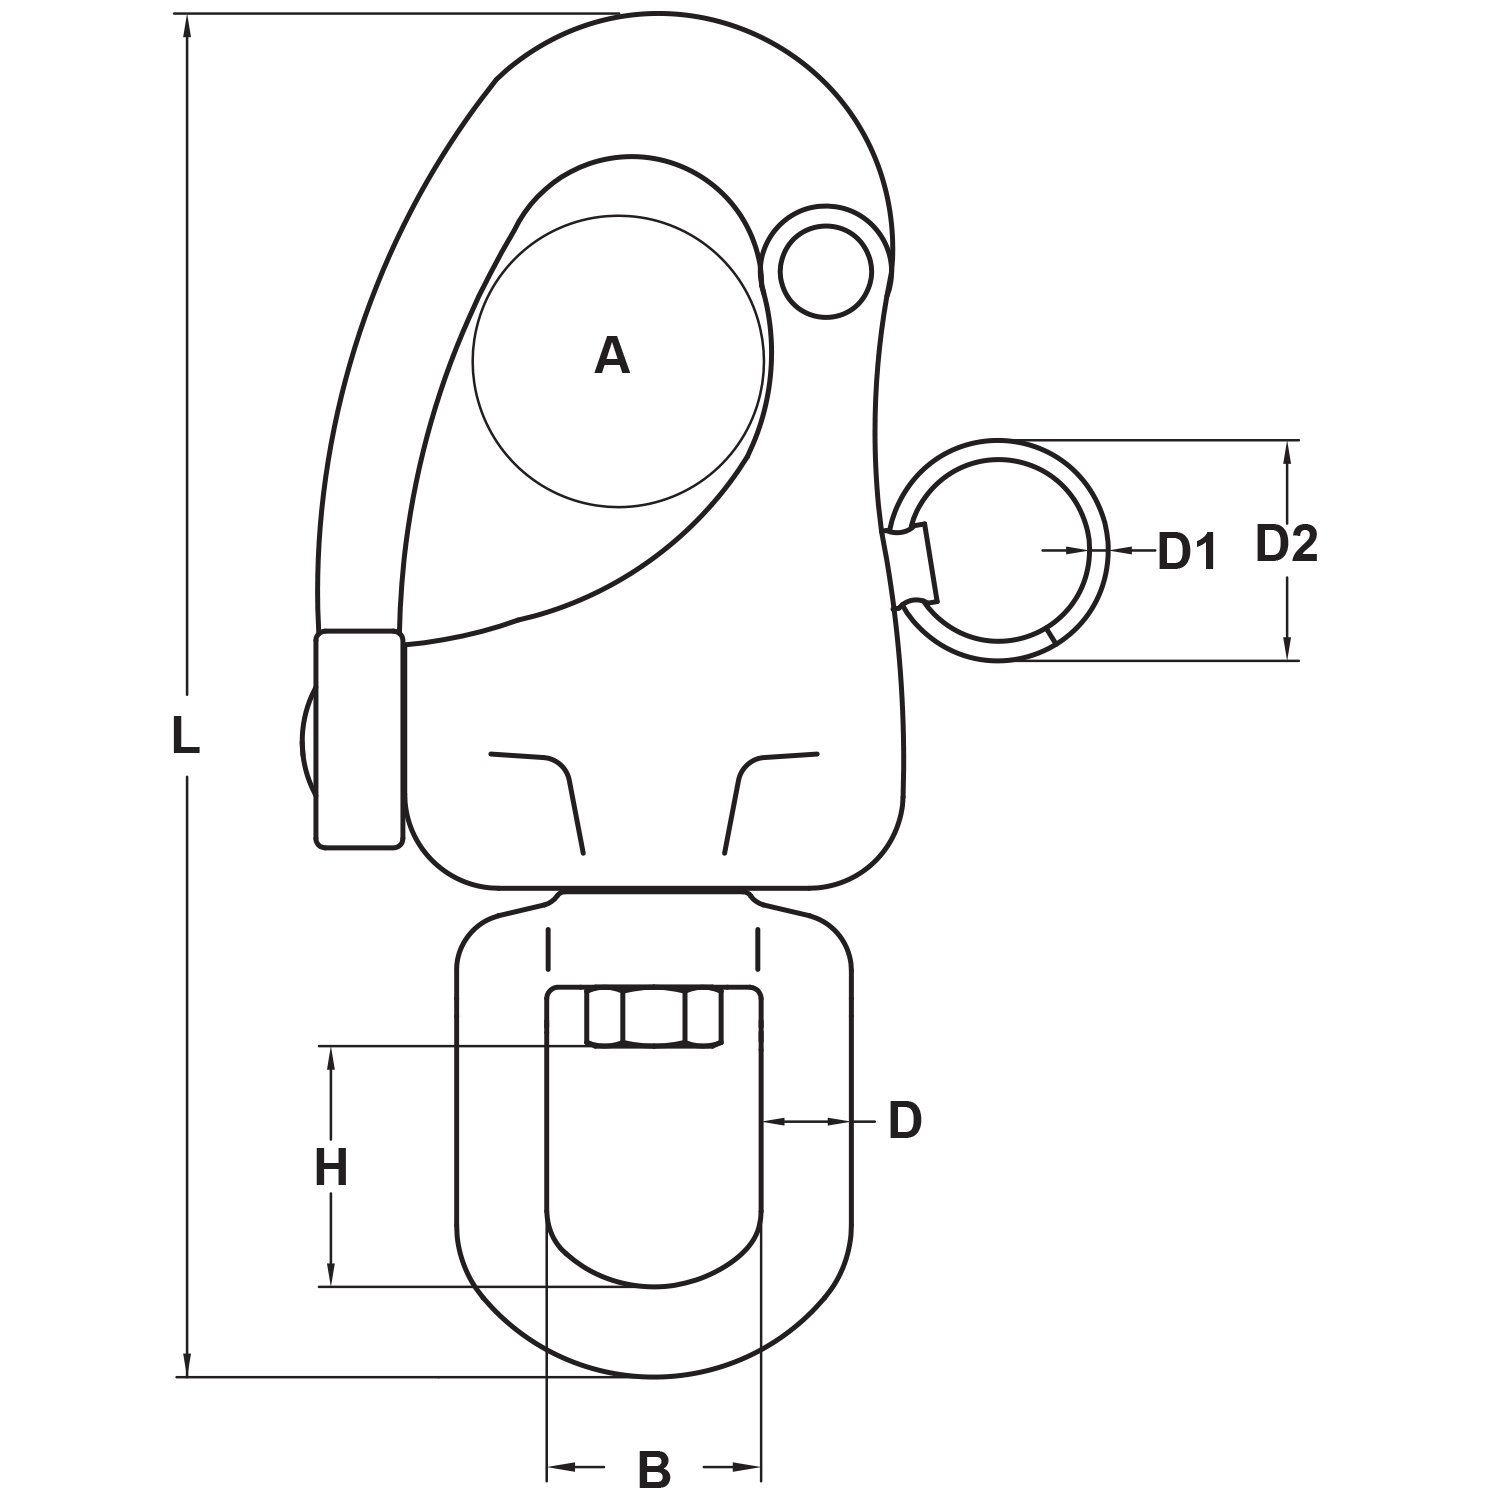 Type 316 Stainless Steel Eye Swivel Snap Shackle Diagram